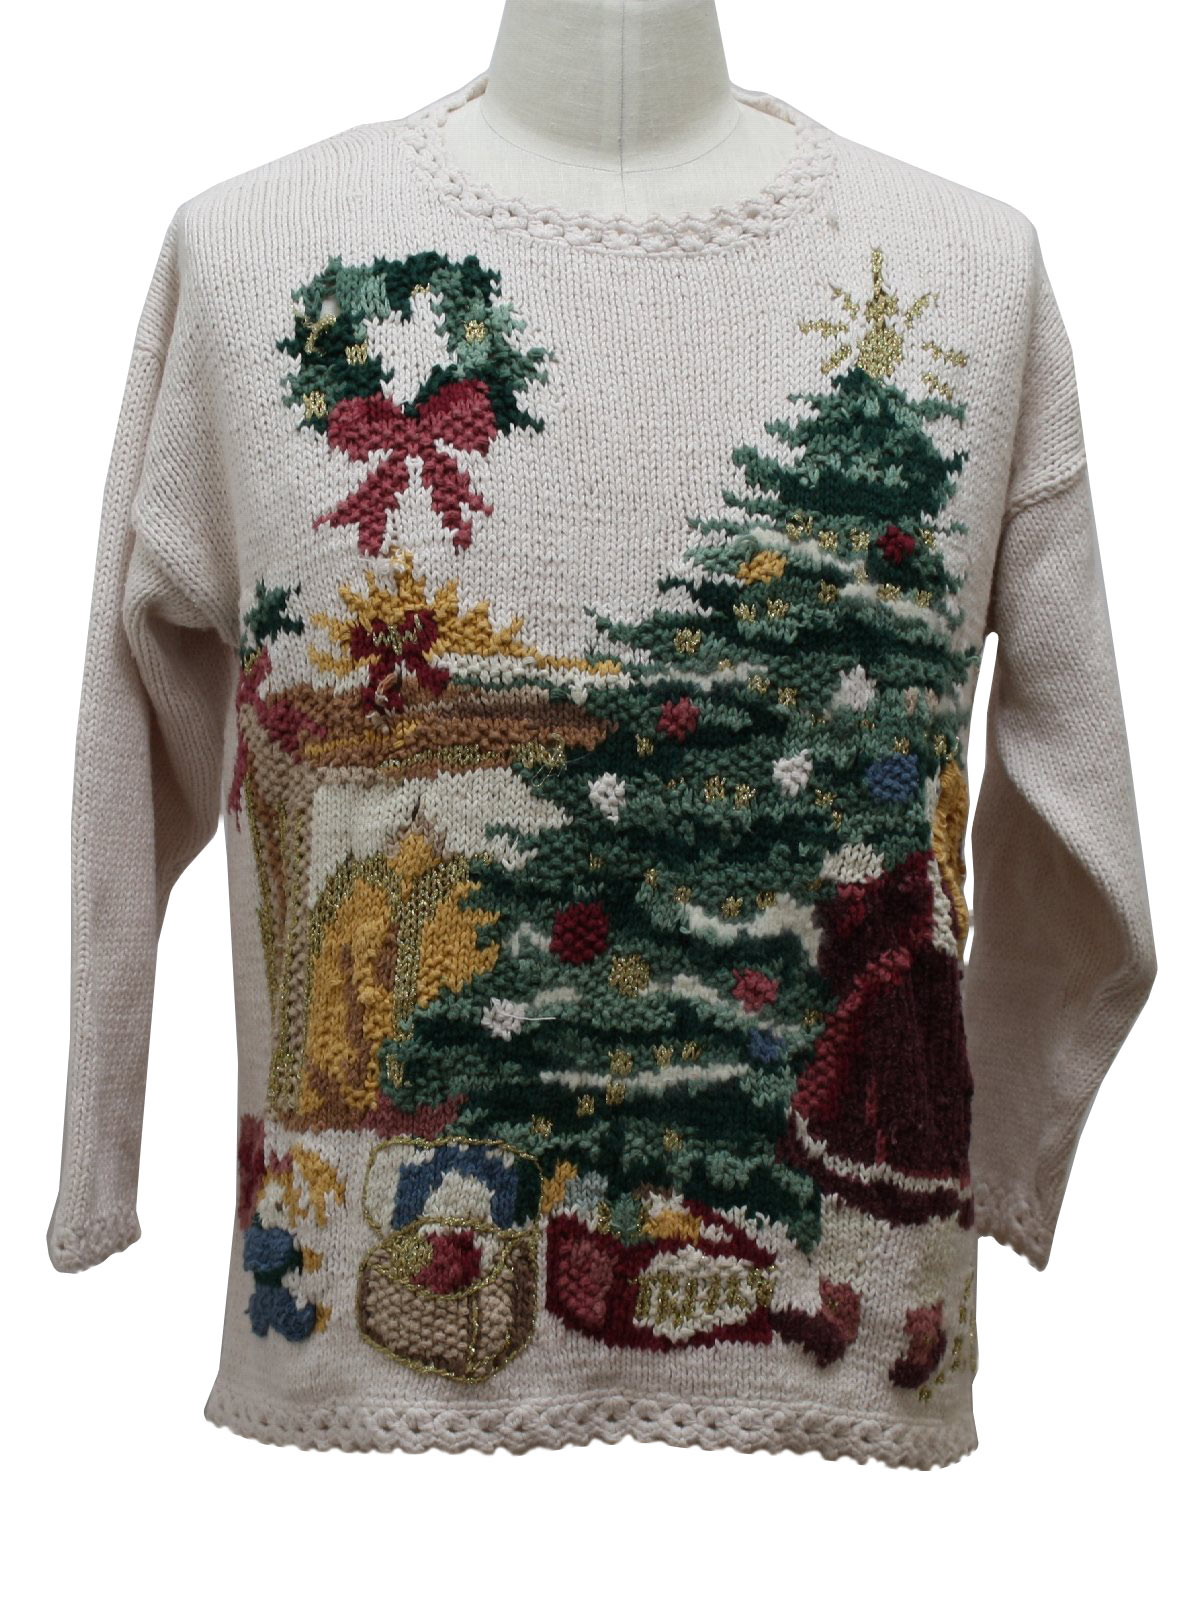 Ugly Christmas Sweater Stefano Basics Unisex Pink Toned Off White Wine Pink And Shades Of